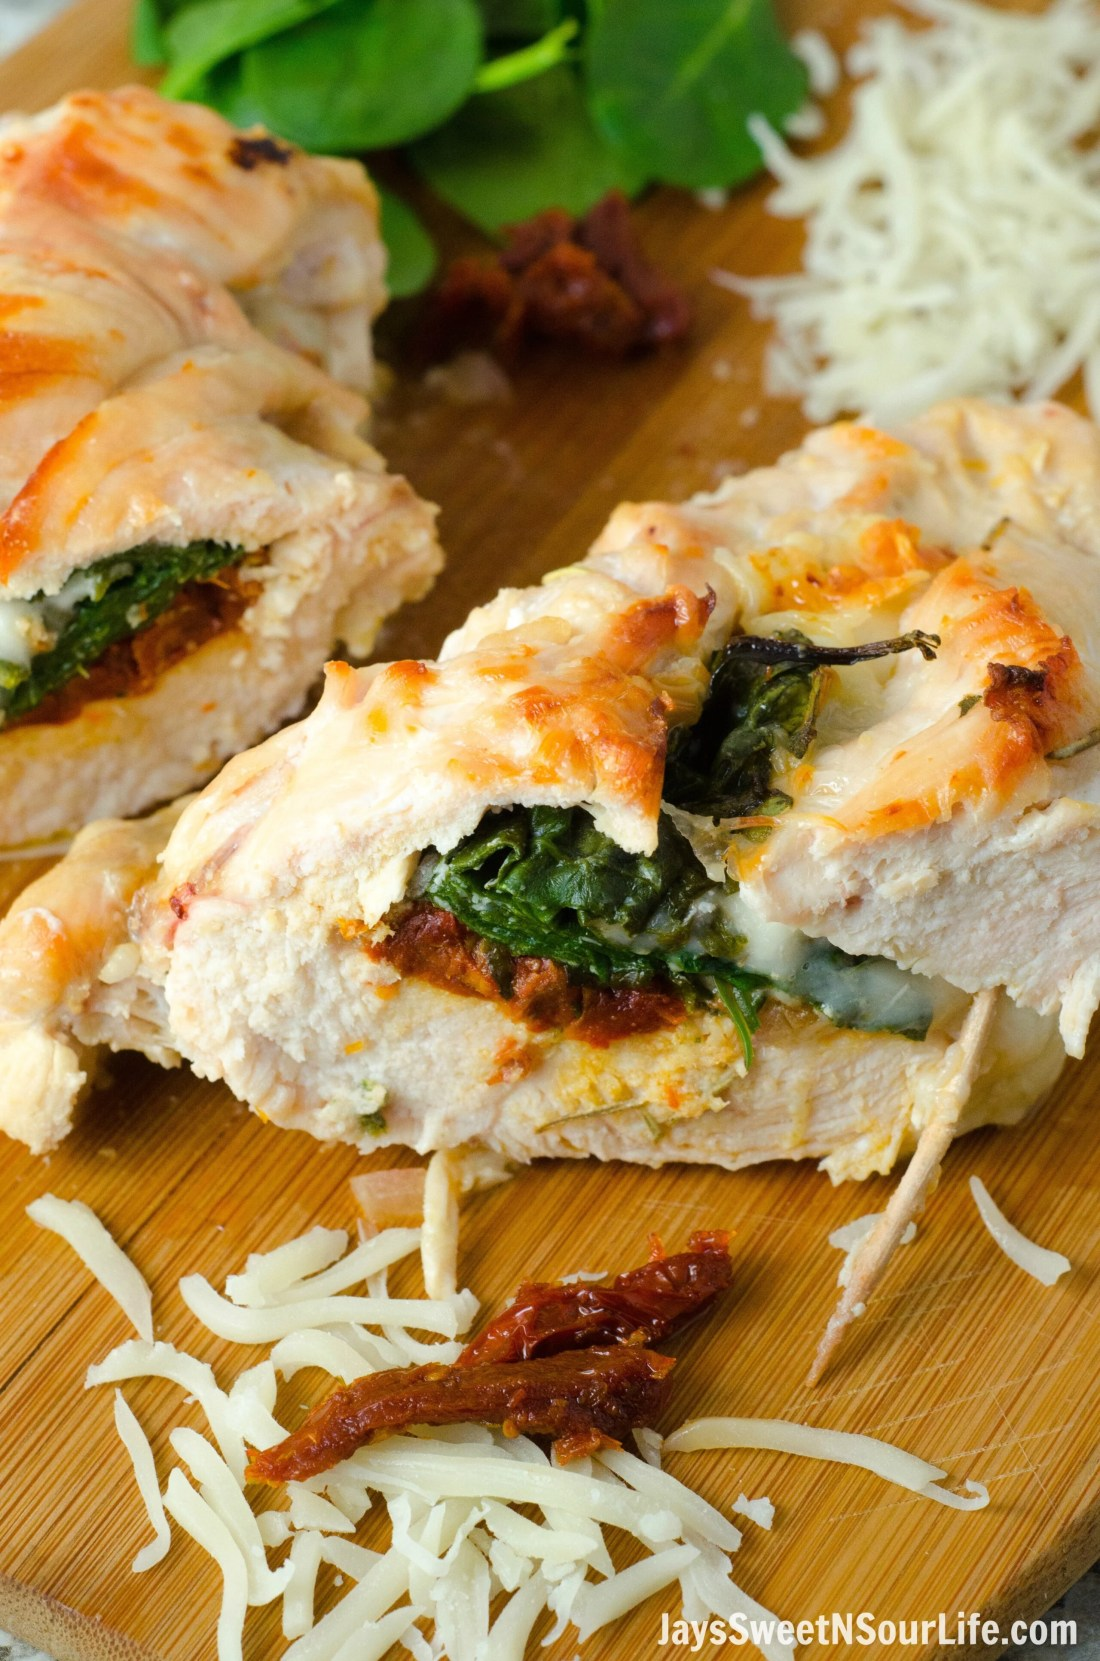 Serve up something delicious and differnt for your dinner tonight. Make this Sundried Tomato, Spinach and Cheese Stuffed Chicken in no time flat.